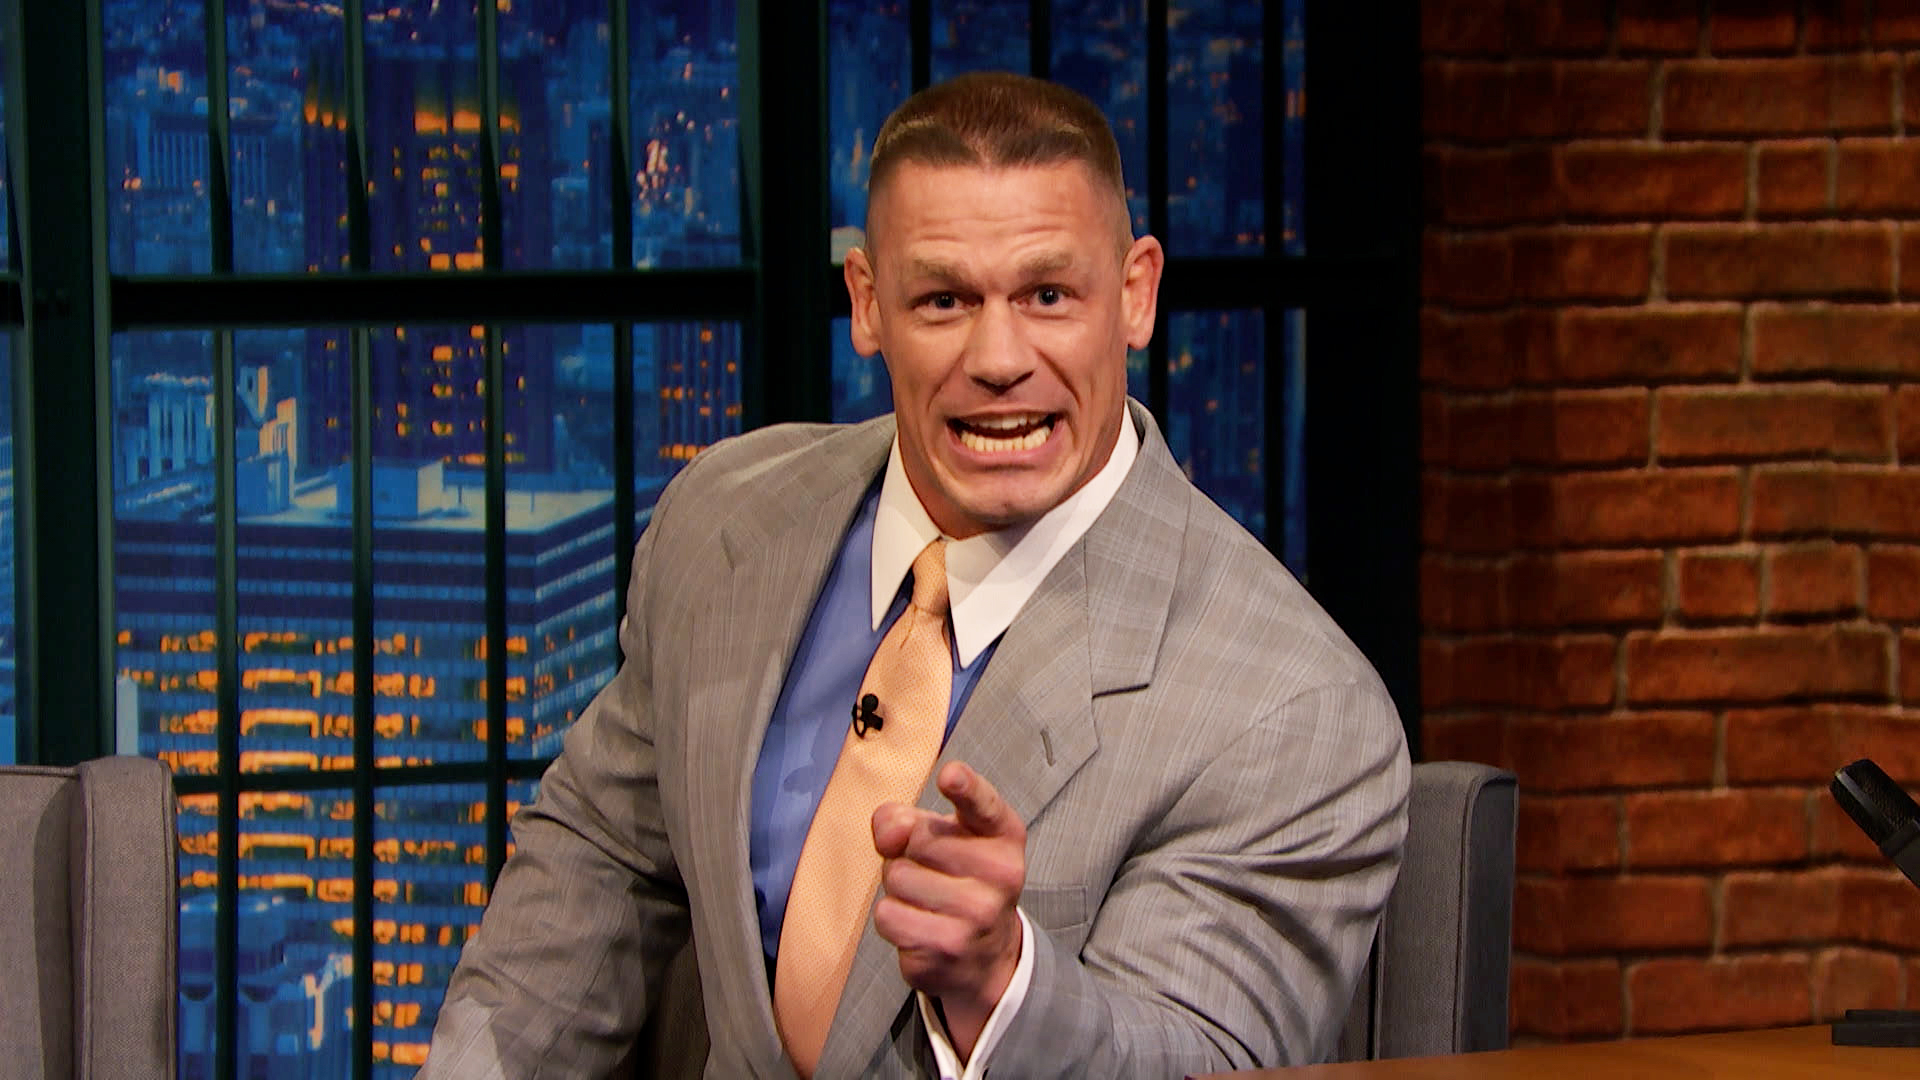 150820_2893866_John_Cena_s_Trash_Talk_for_His_SummerSlam_Op_anvver_2 watch late night with seth meyers interview john cena's trash talk